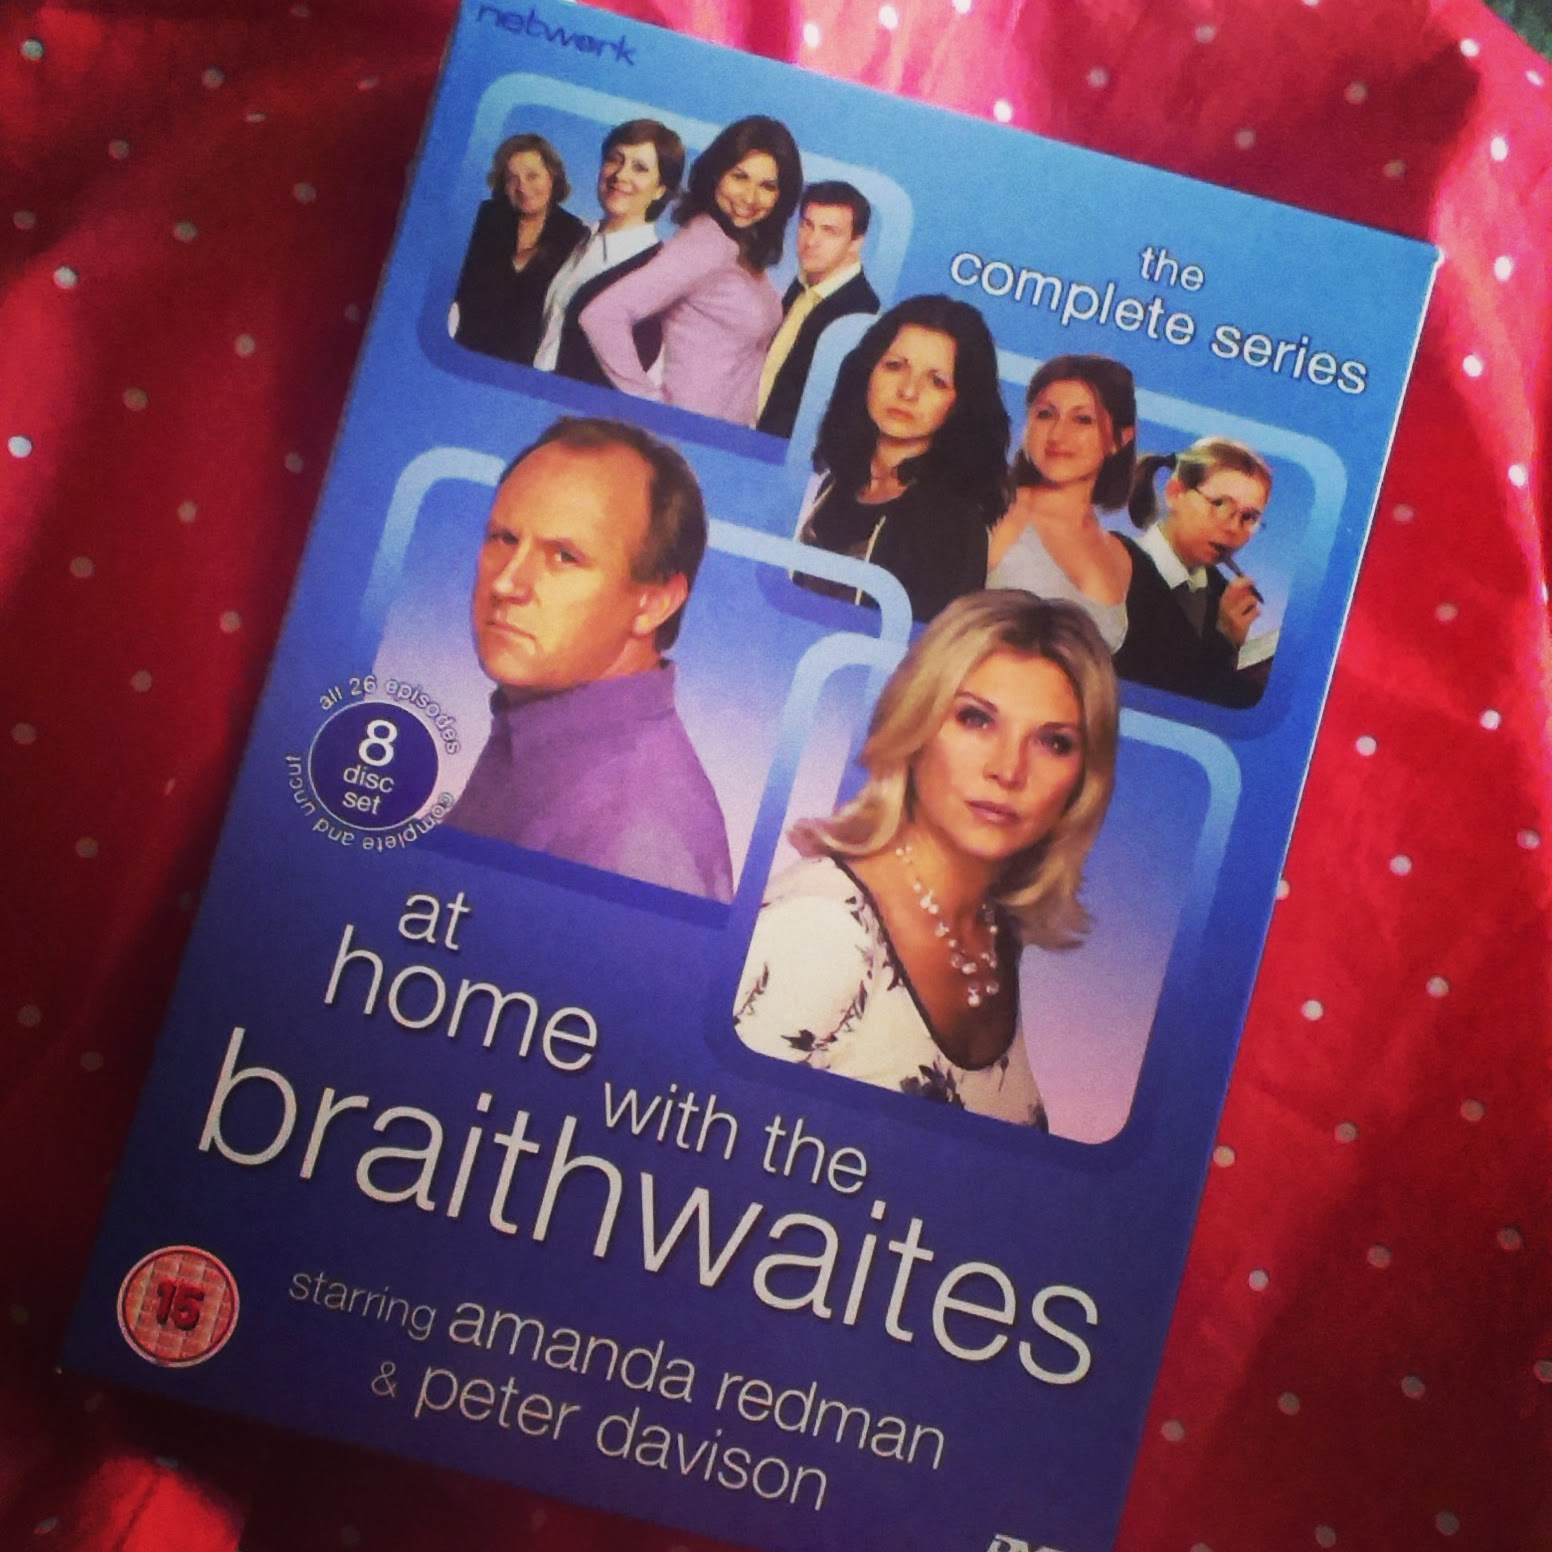 At Home with the Braithwaites DVD boxset